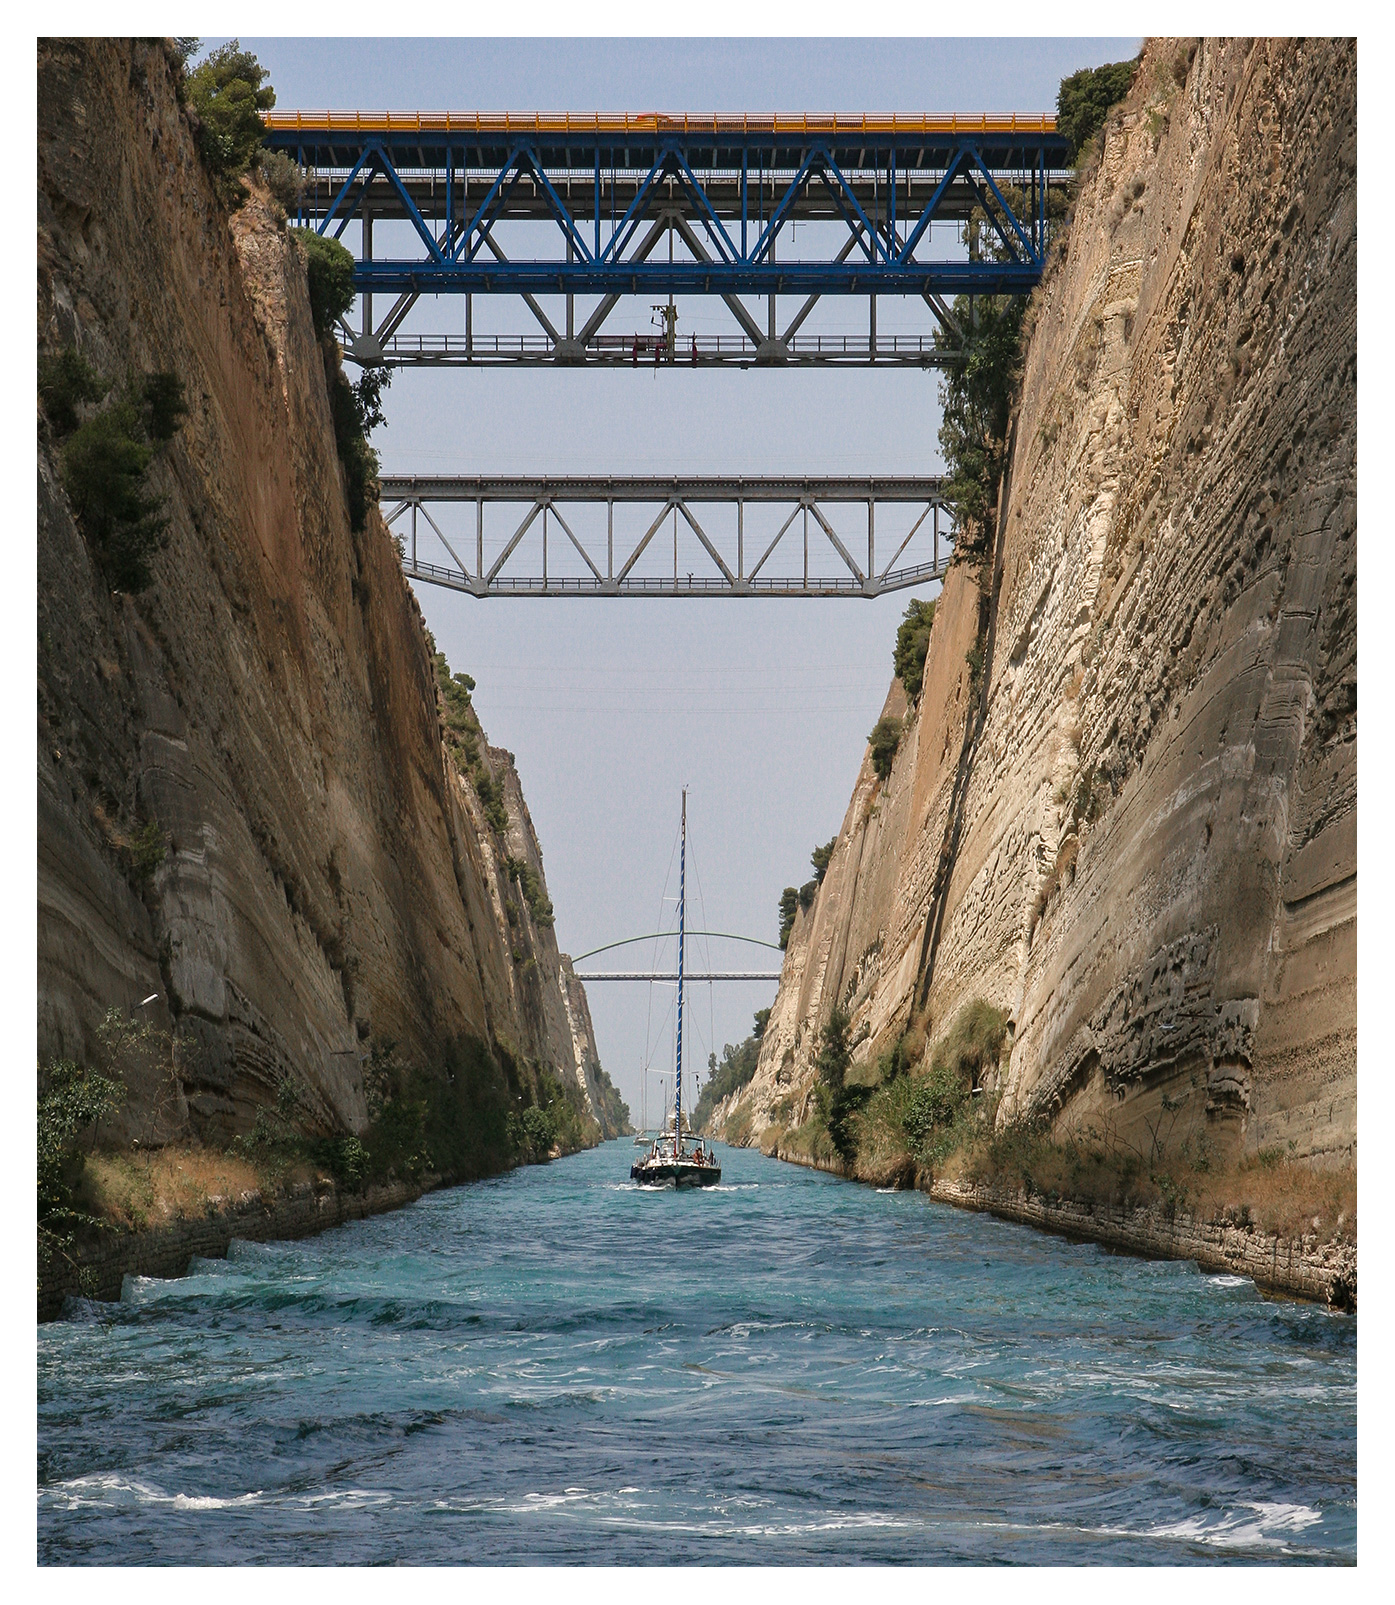 Yachting photography: A sailing yacht negotiating its way through the Corinth Canal, Greece